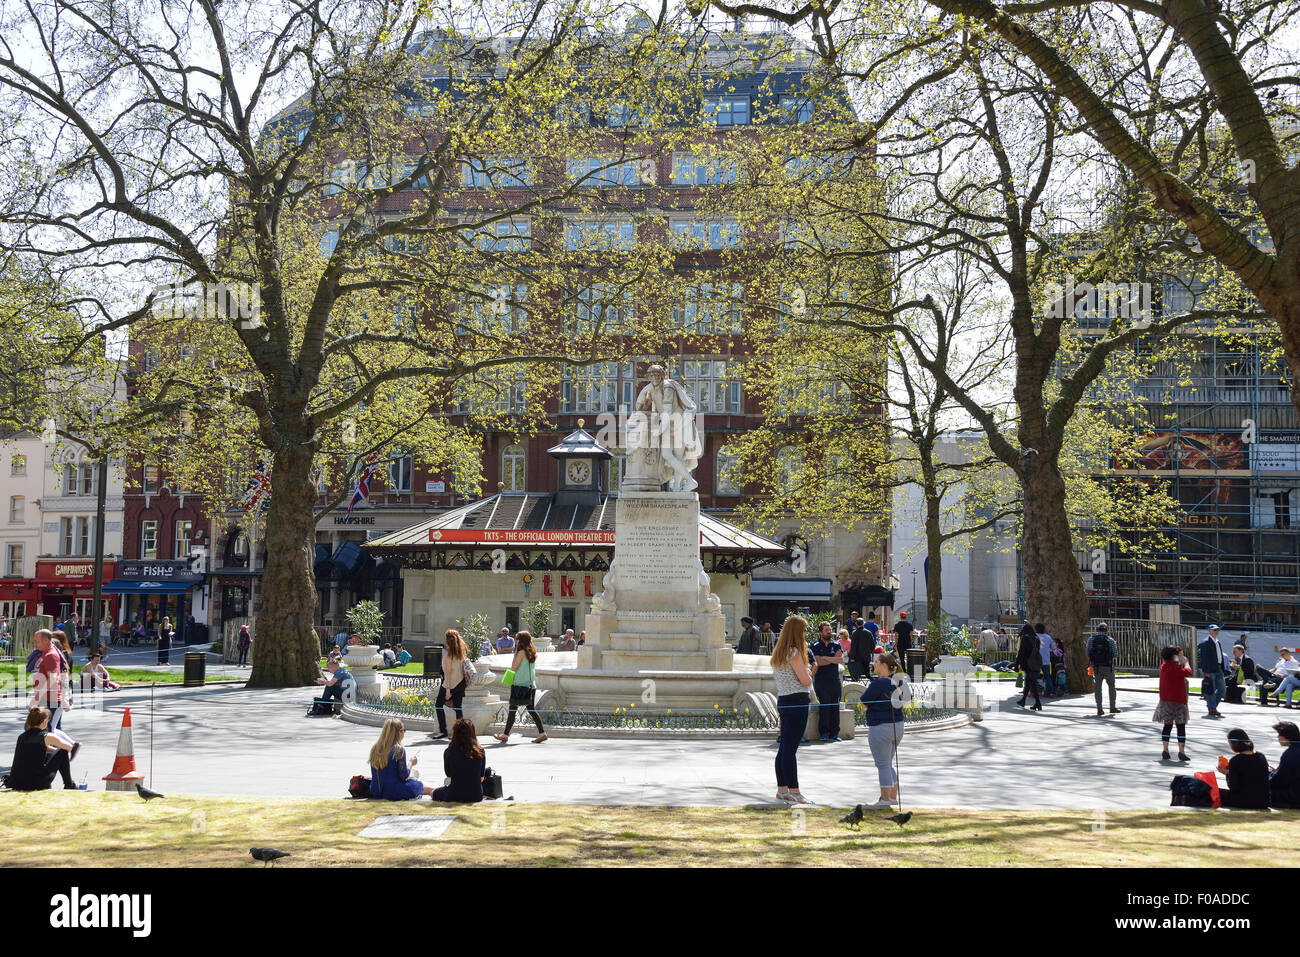 The Shakespeare Fountain, Gardens Square, Leicester Square, West End, City of Westminster, London, England, United - Stock Image